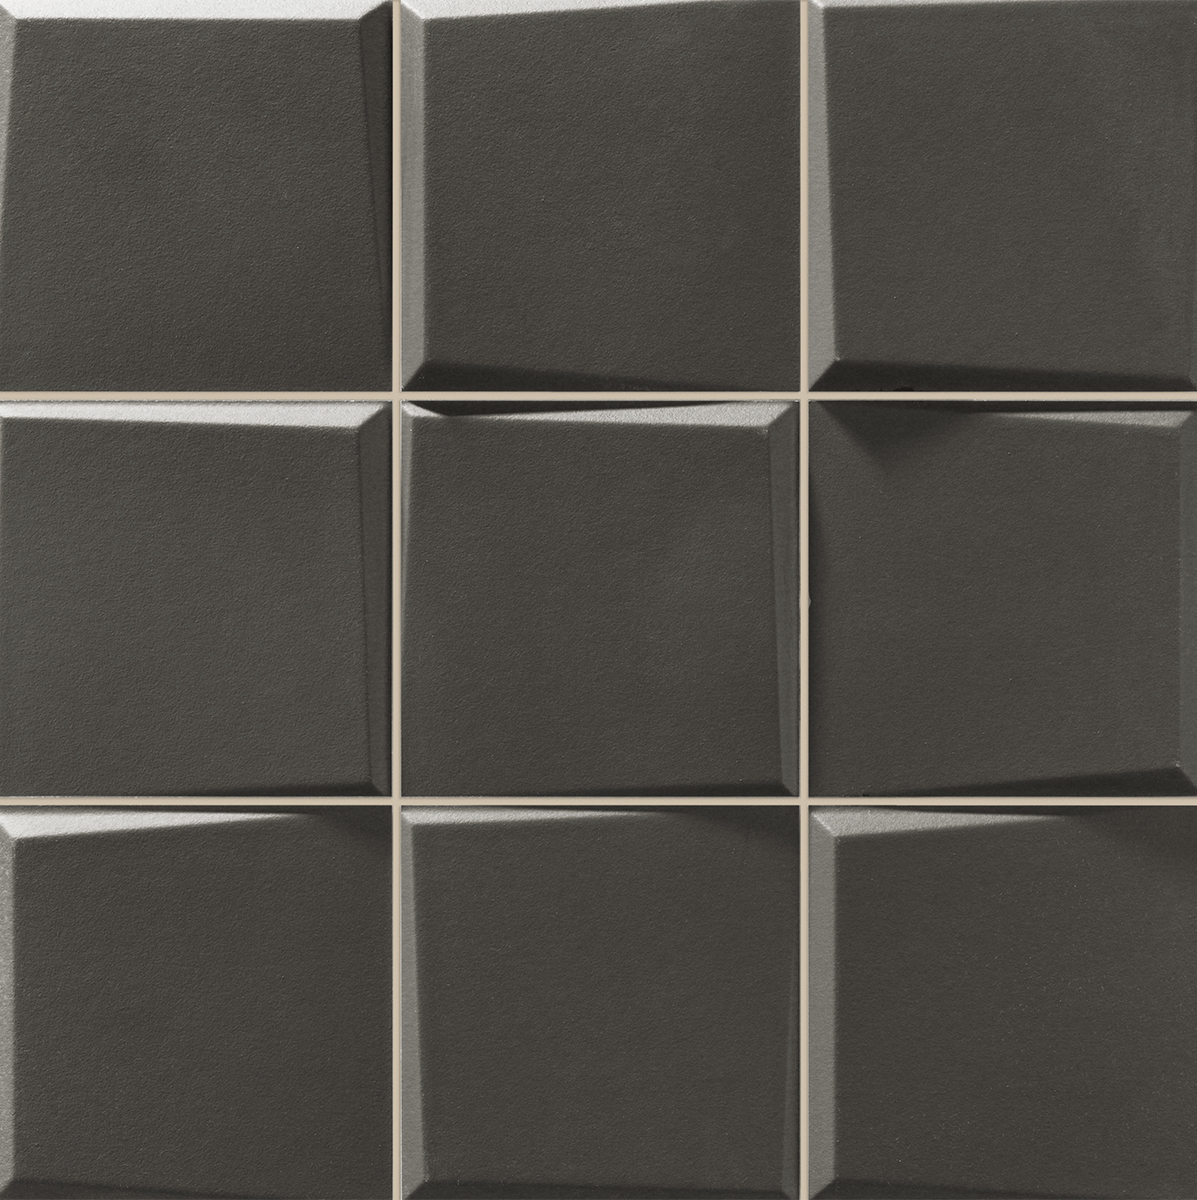 image/catalog/product_series_tiles/1429/PATTERN_NEGRO_33X33_smaller_-edited-.jpg